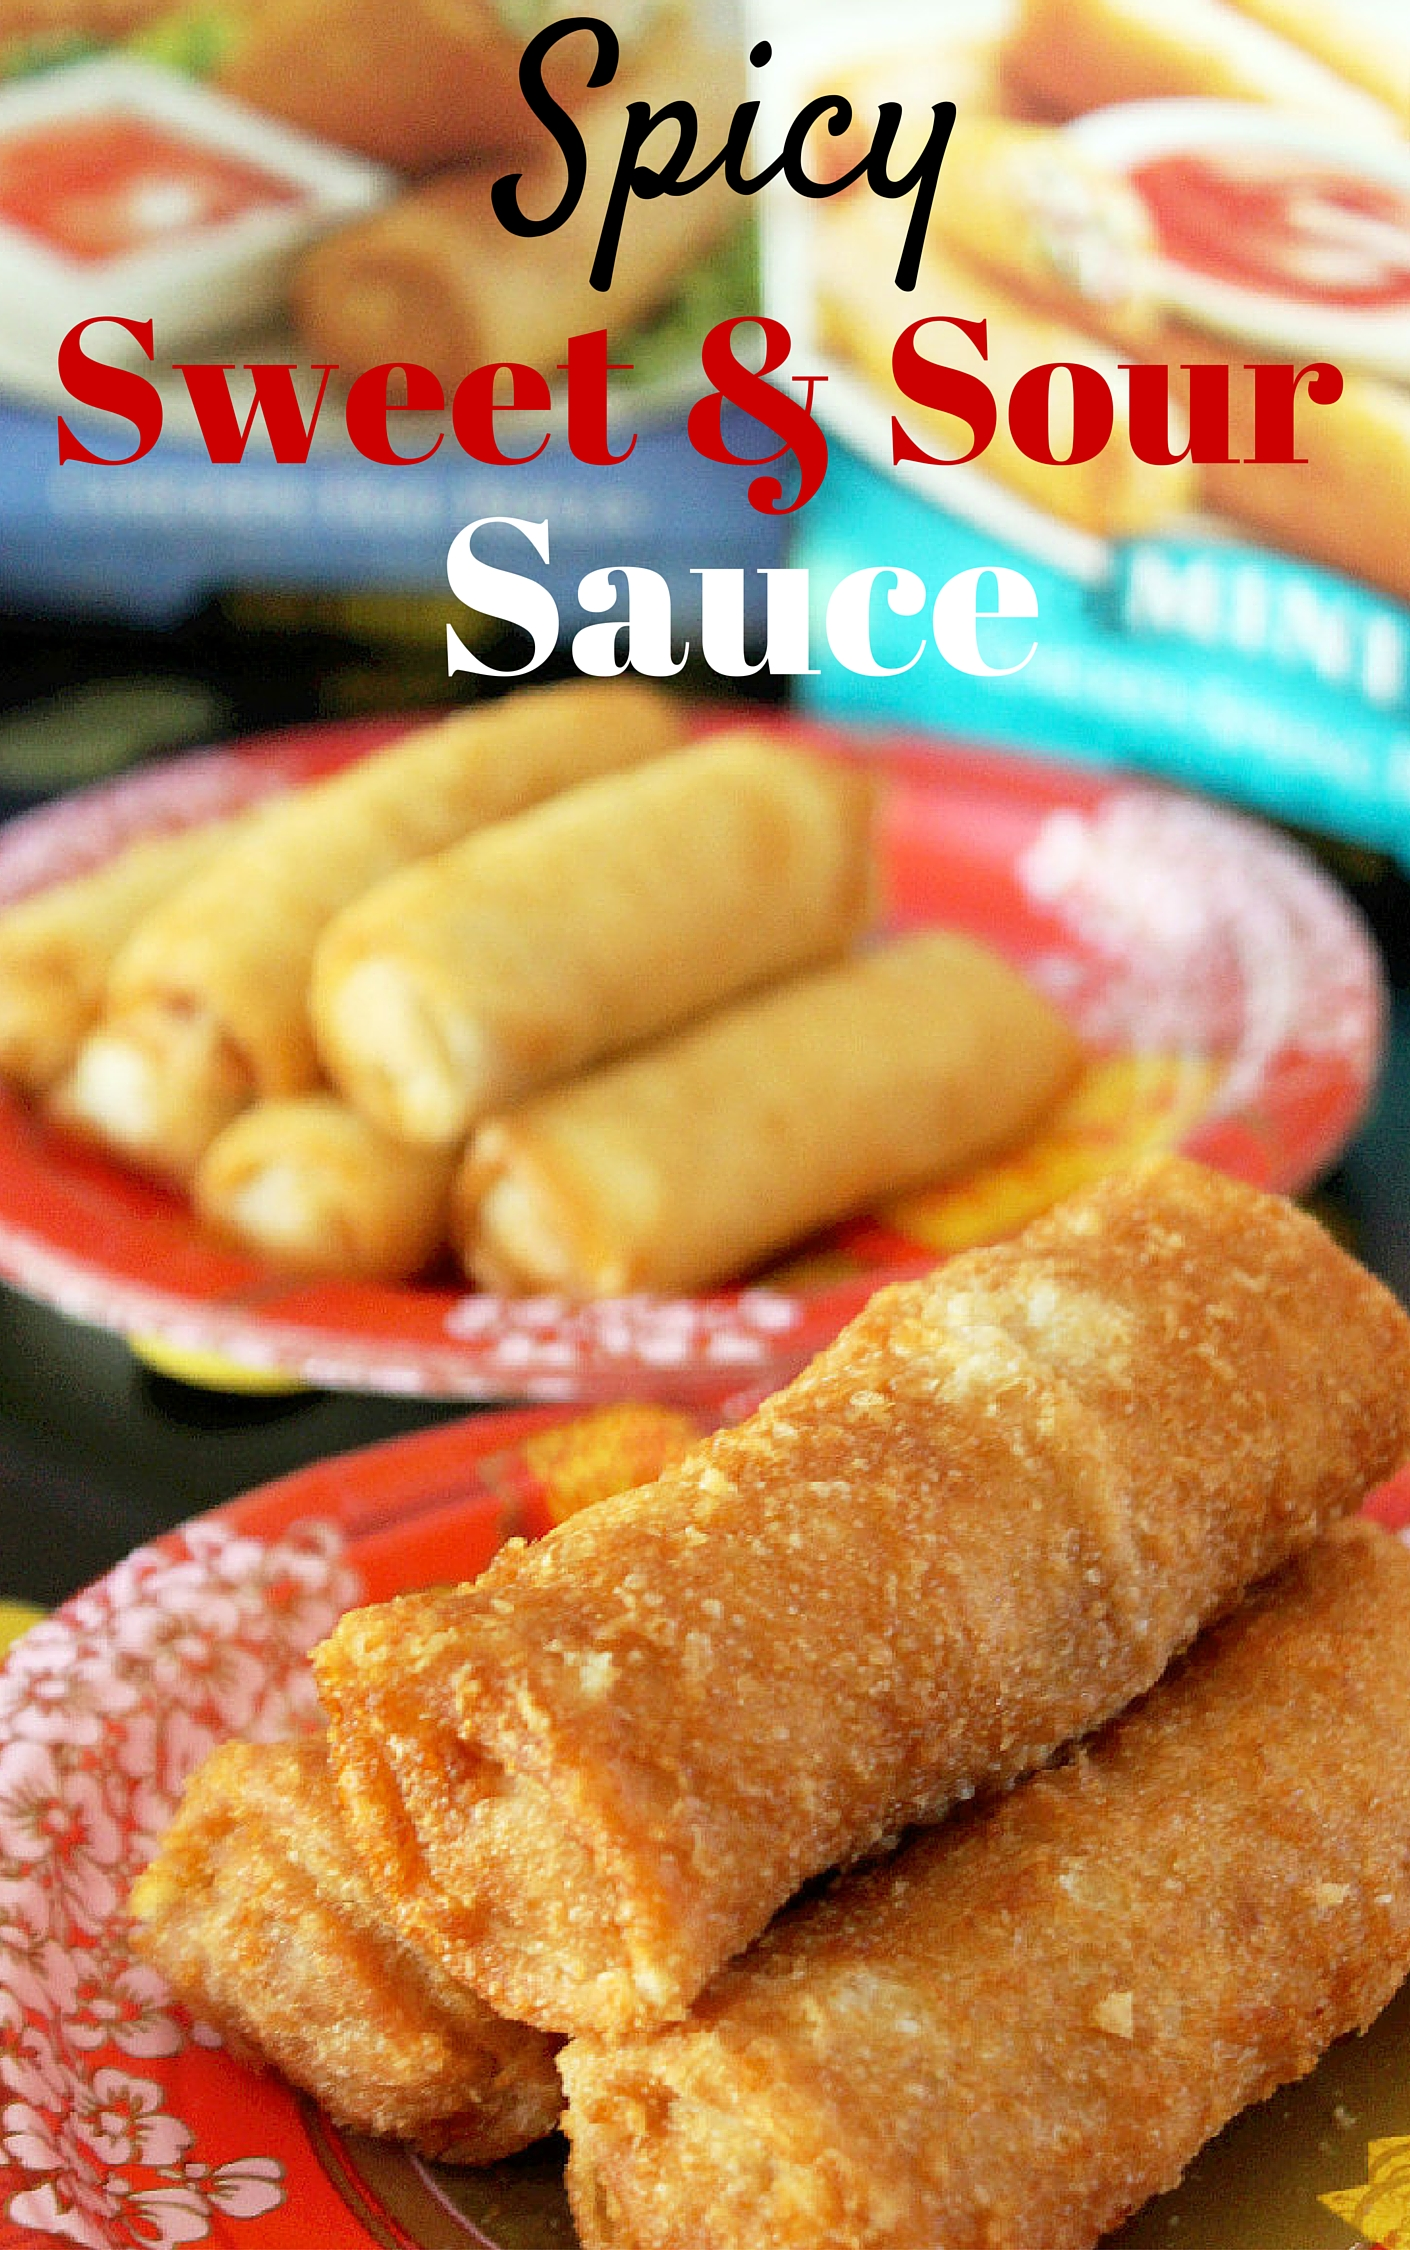 Spicy Sweet and Sour Sauce Celebrating Chinese New Year with Tai Pei®-Creole Contessa